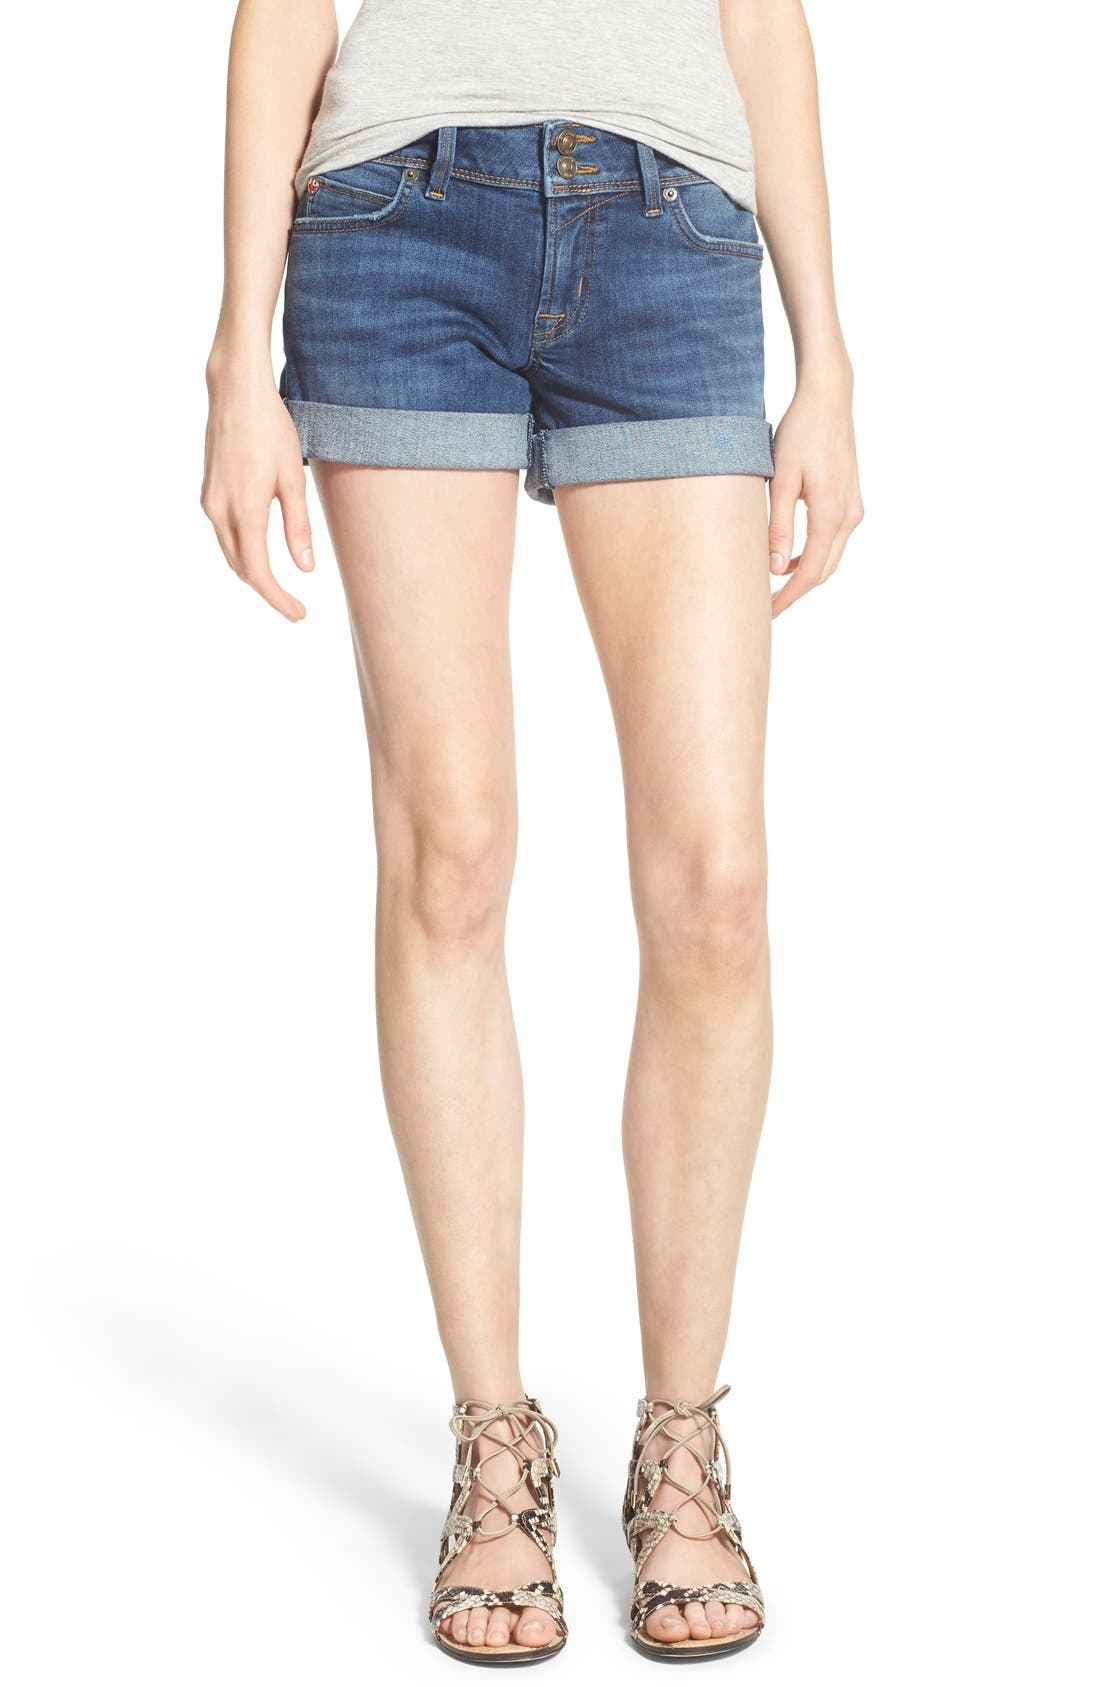 Alternate Image 1 Selected - Hudson Jeans 'Croxley' Cuffed Denim Shorts (Advantageous)